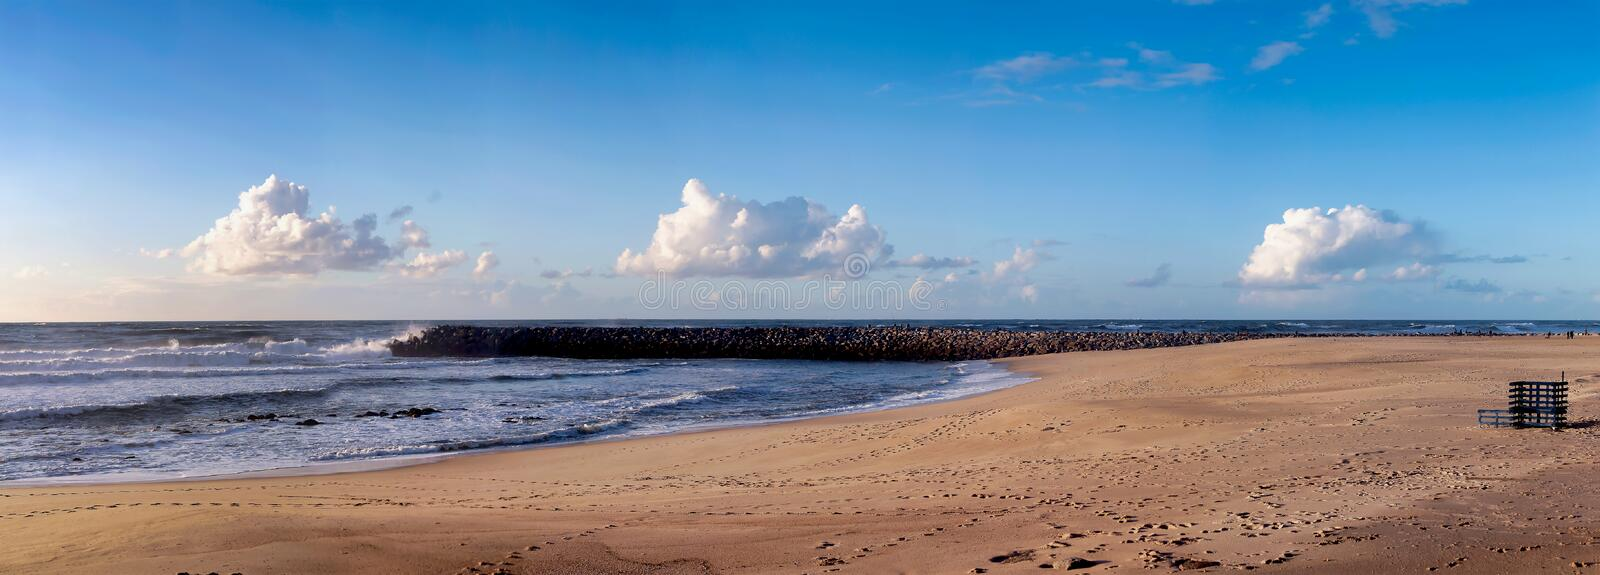 Large empty beach at daylight under a sunny blue cloudy sky stock image